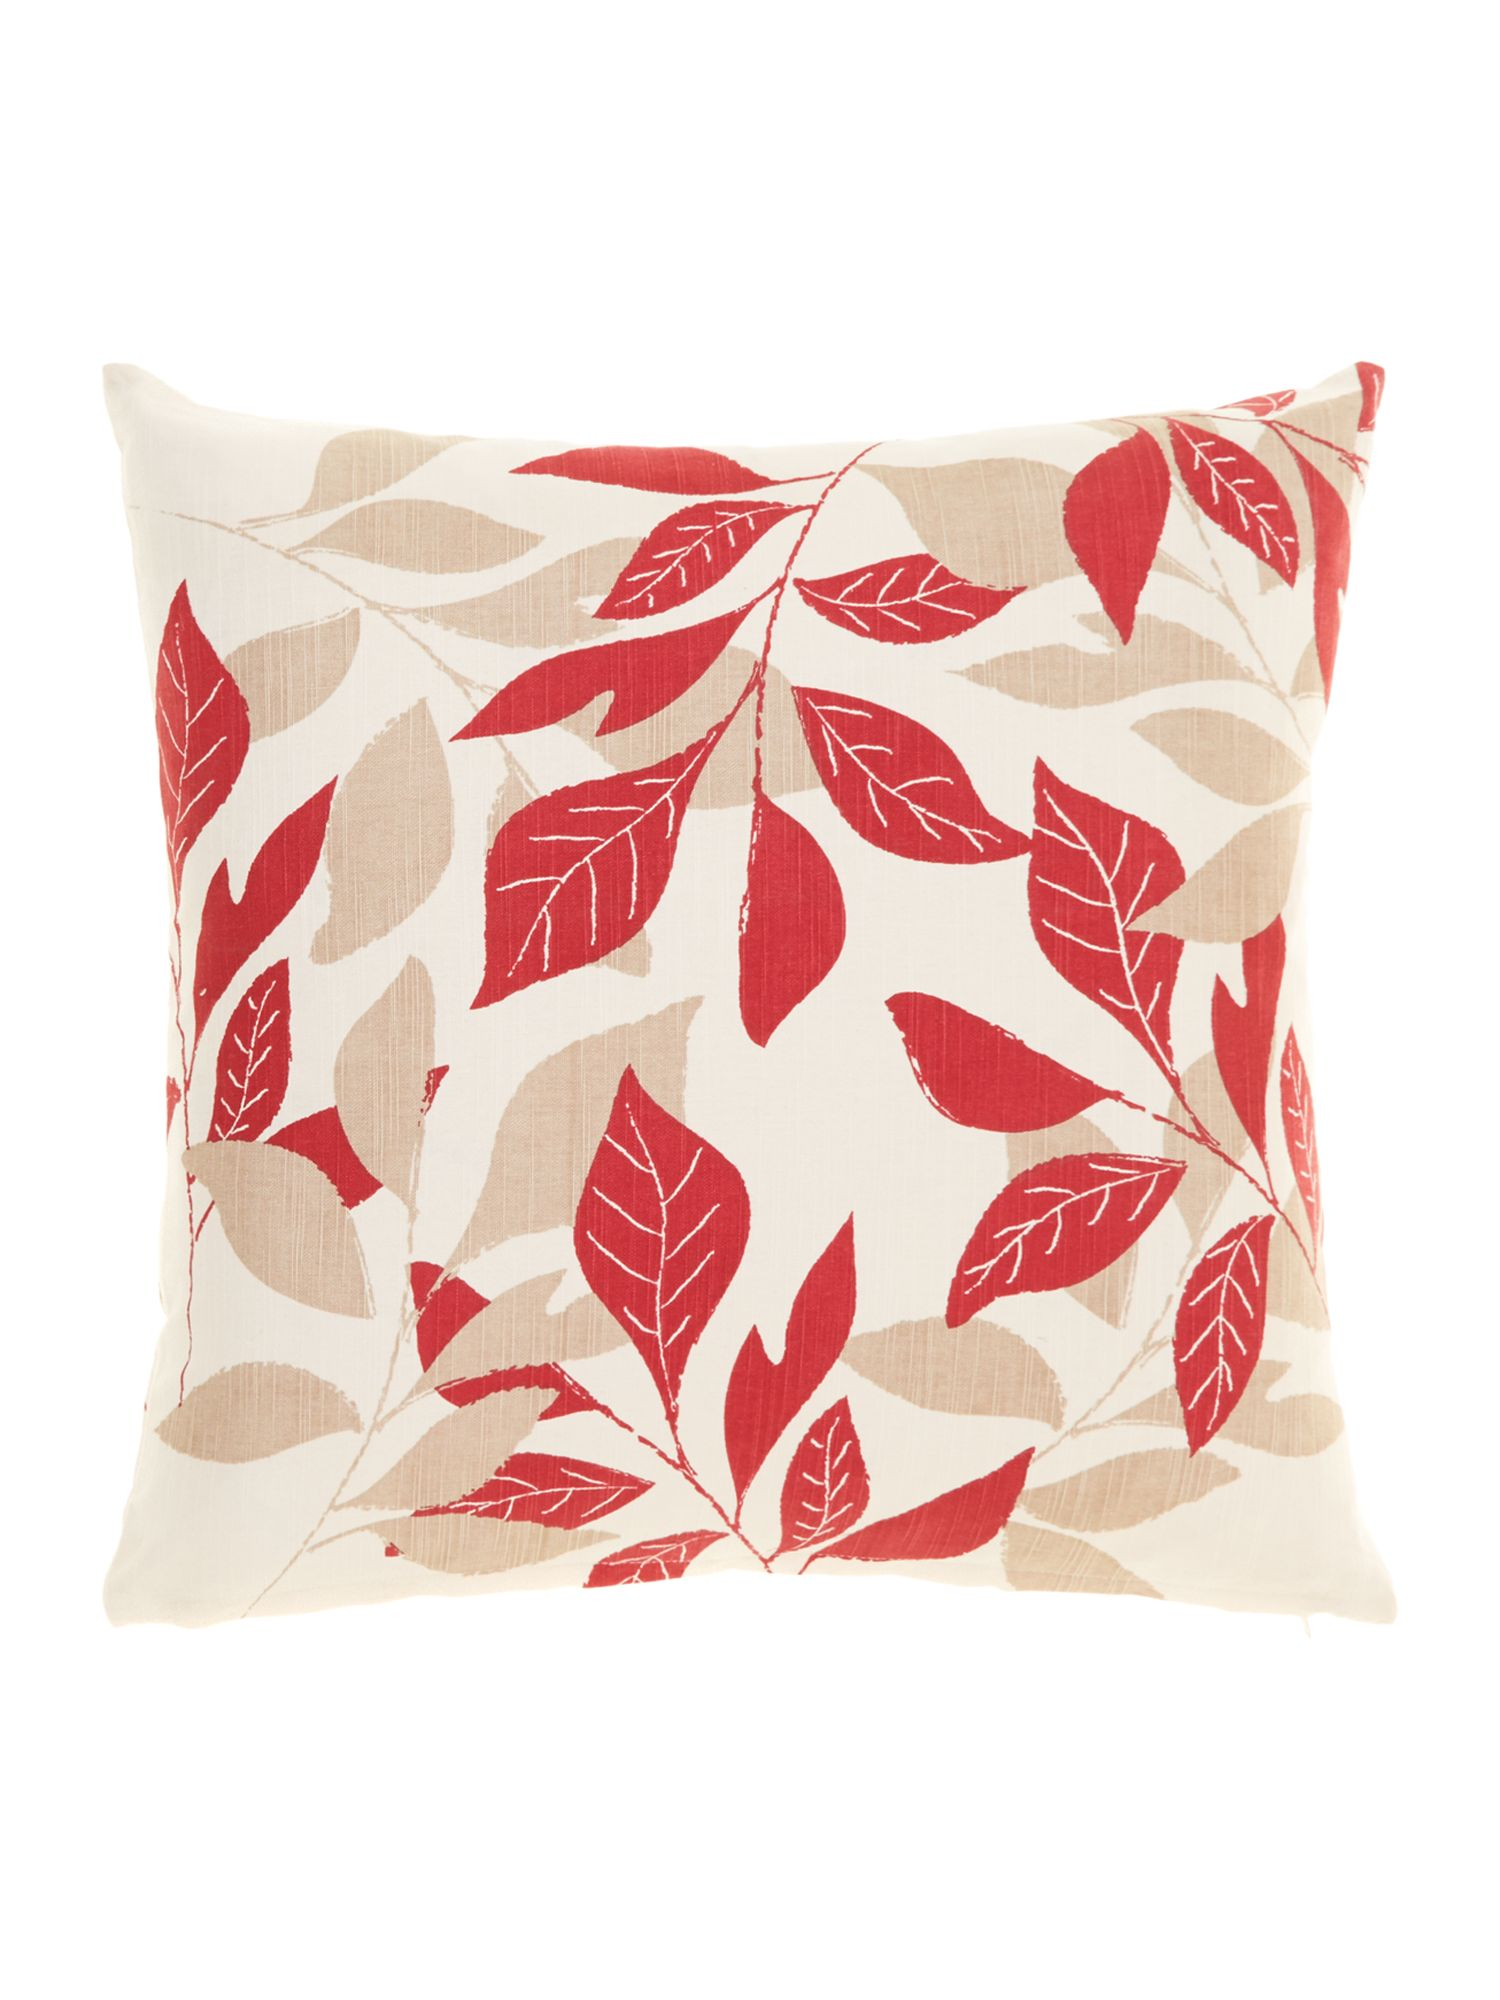 Leaf design cotton cushion, Red